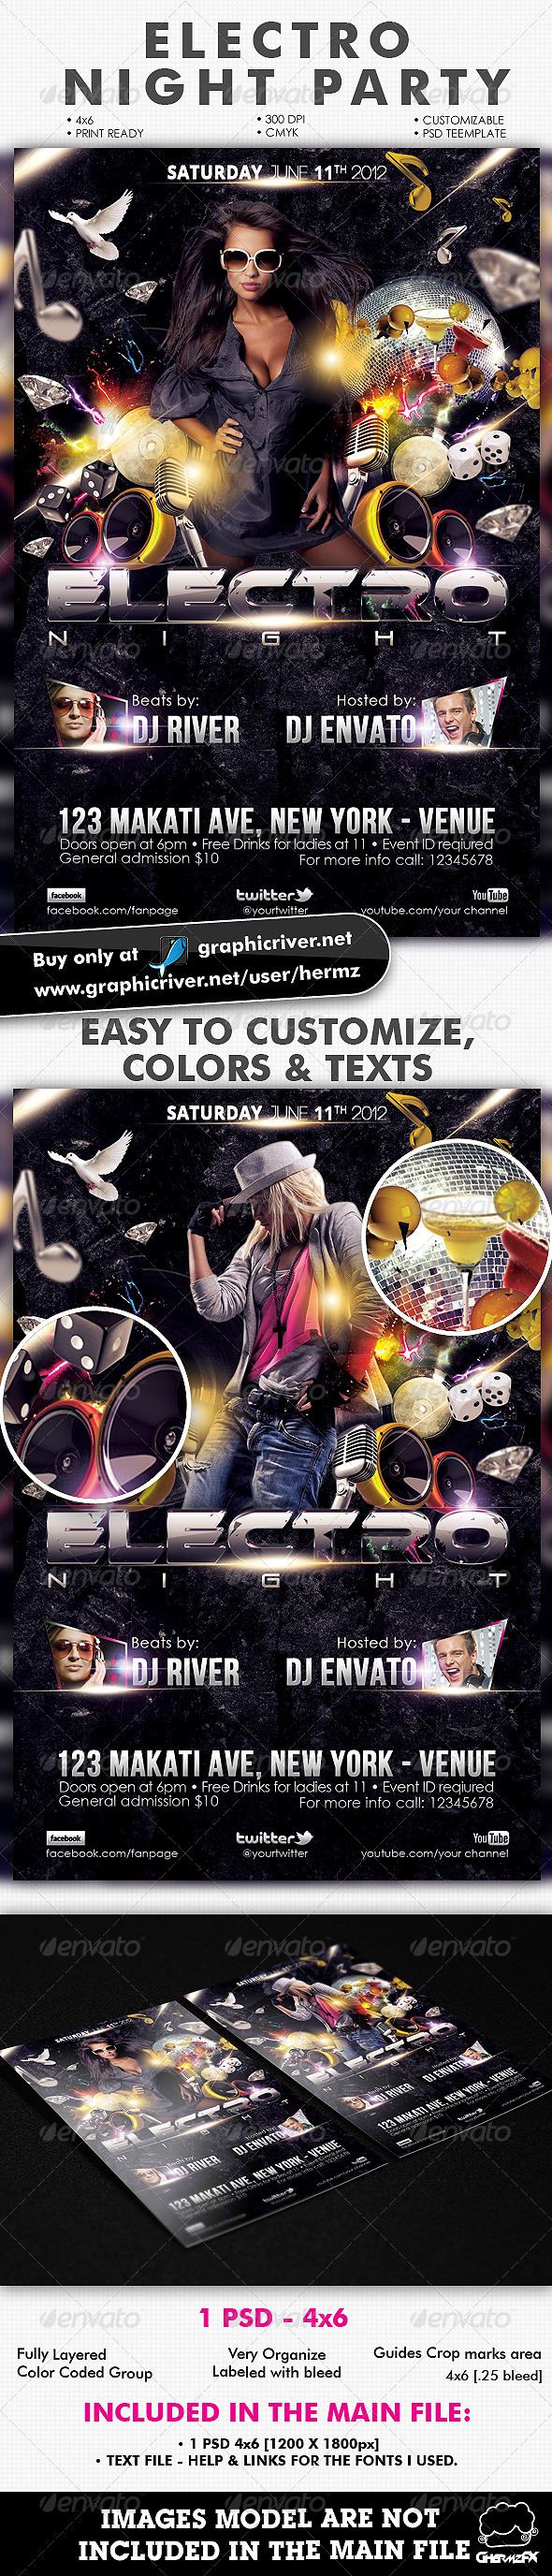 Electro Nights Flyer Template - Flyers Print Templates